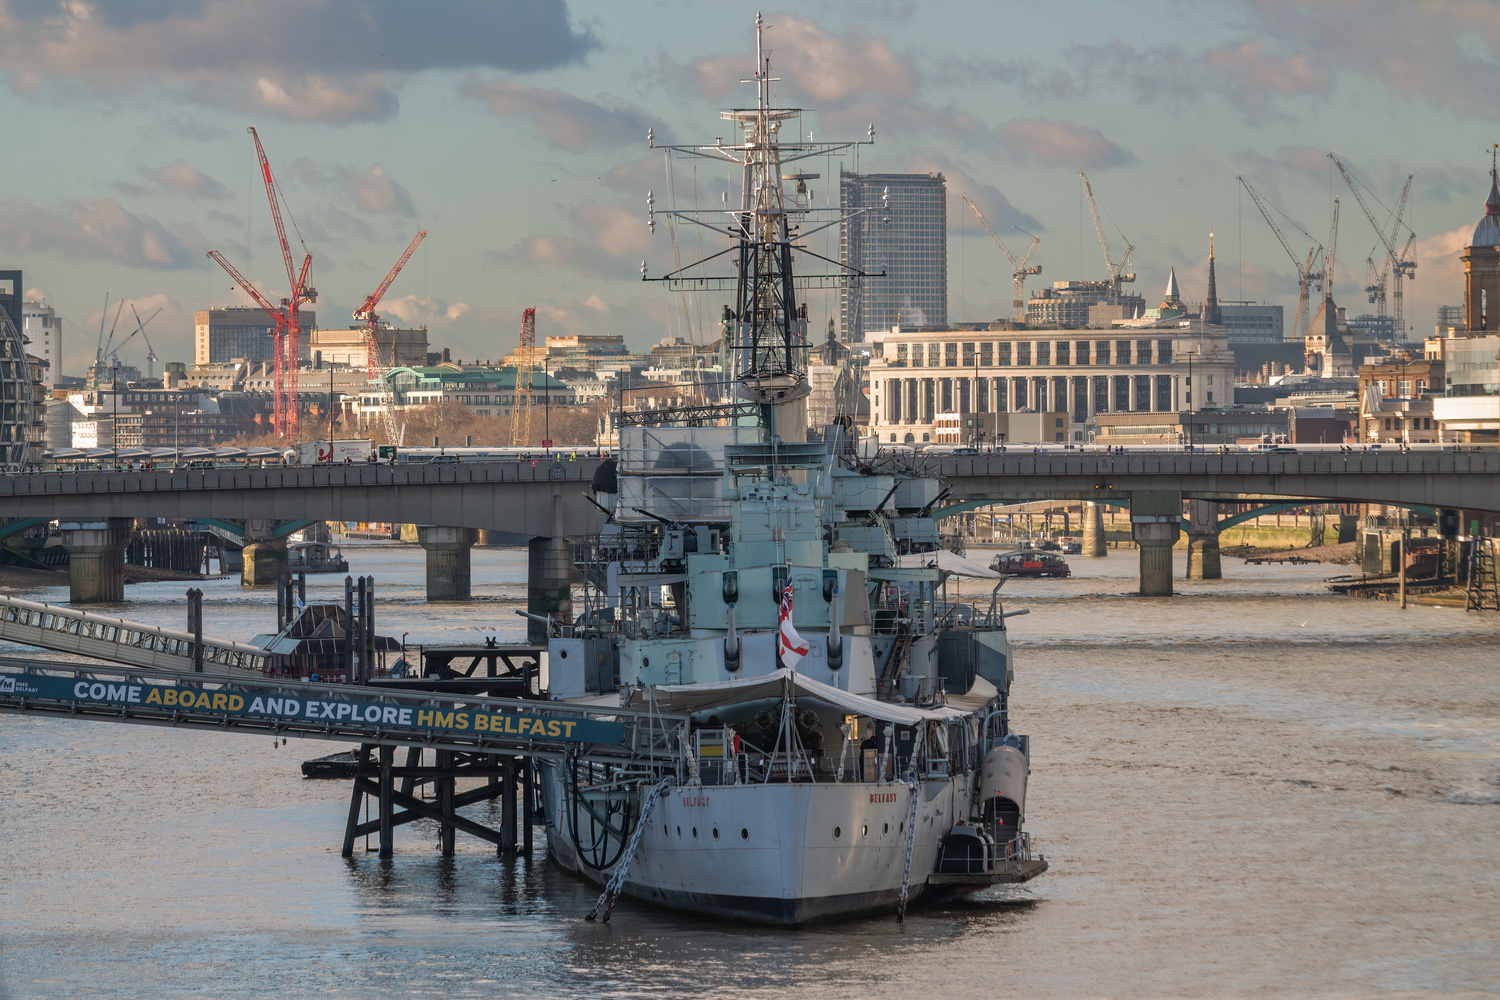 HMS Belfast Warship by Luca Campioni